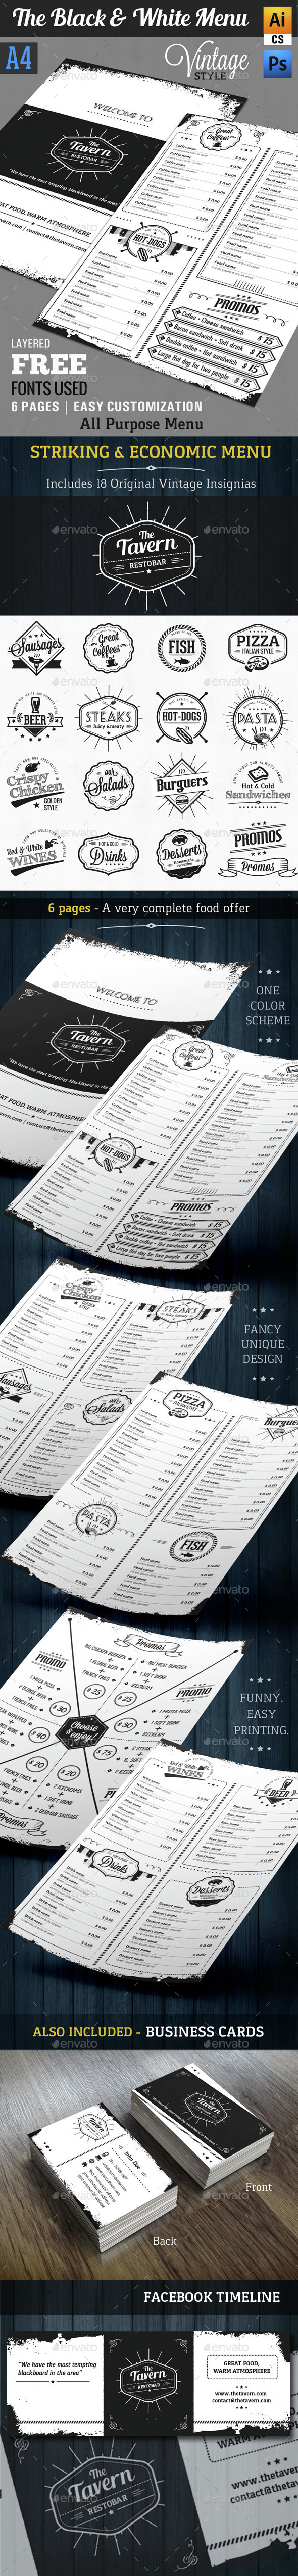 The Black and White Menu || A4 - Vintage Style - Food Menus Print Templates